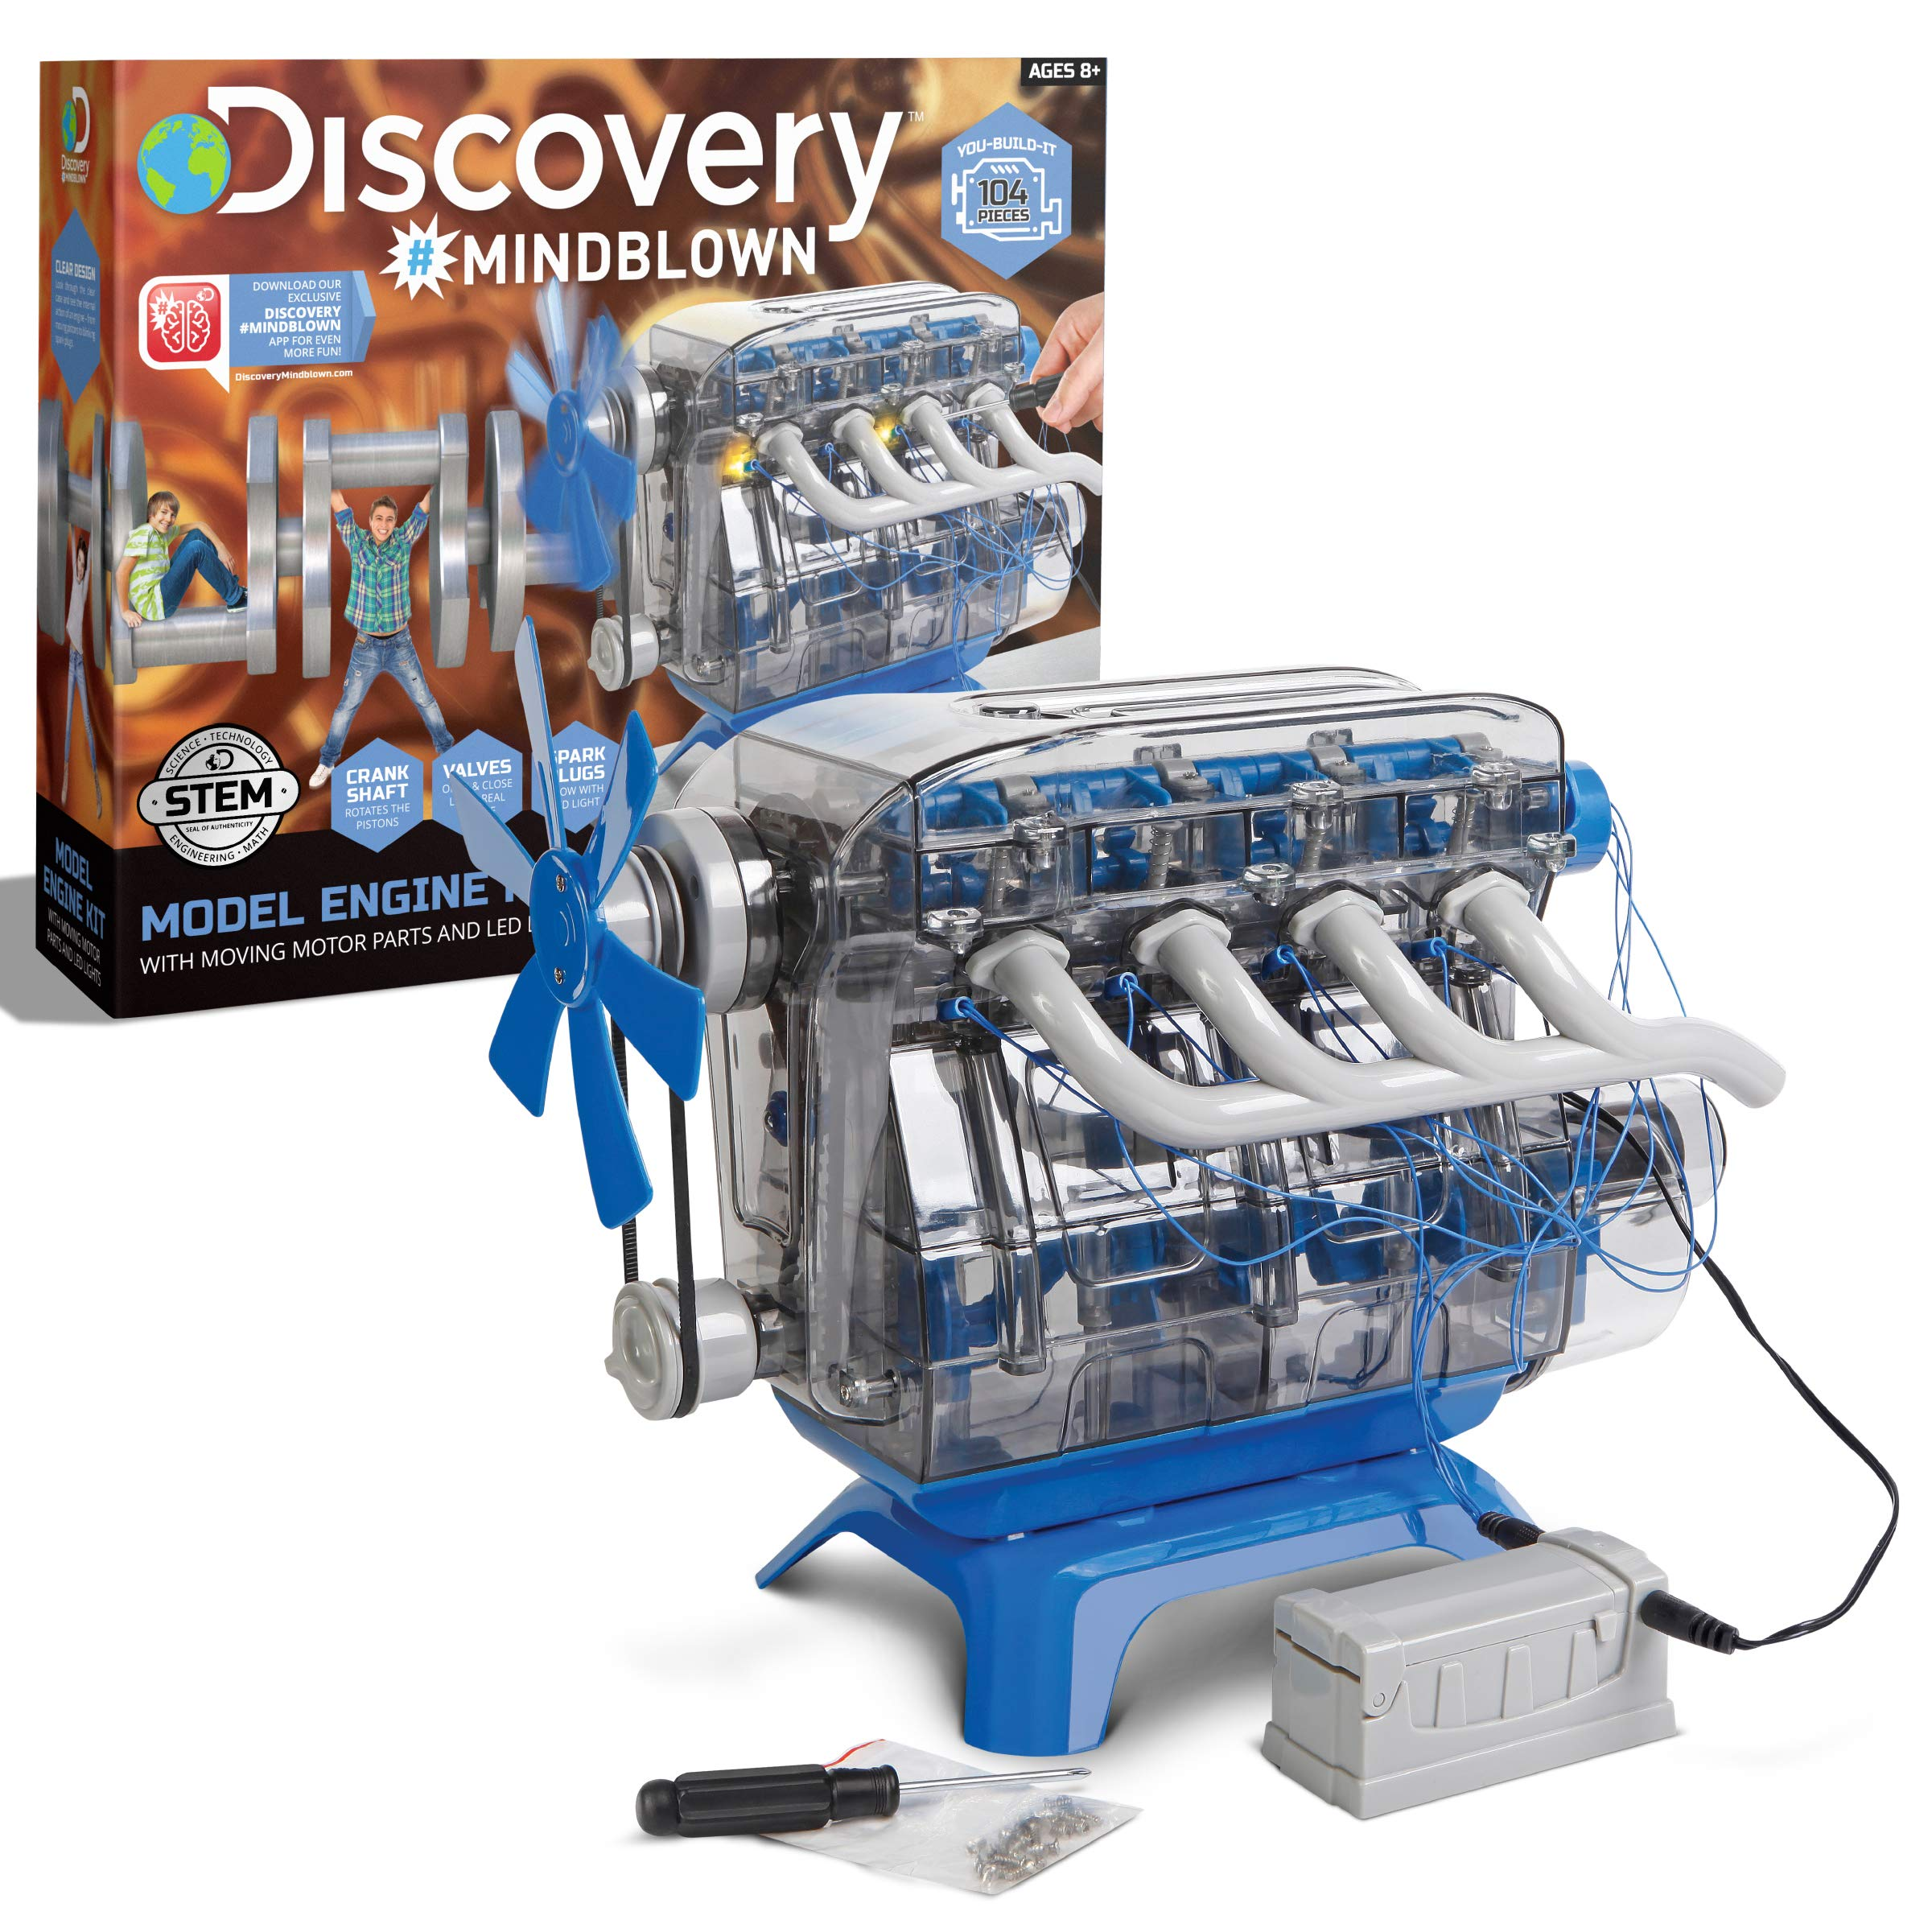 Discovery Kids #MINDBLOWN Model Engine Kit, DIY Mechanic Four Cycle Internal Combustion Assembly Construction, Comes W/Valves, Cylinders, Hardware & More, Encourages STEM Creativity/Critical Thinking